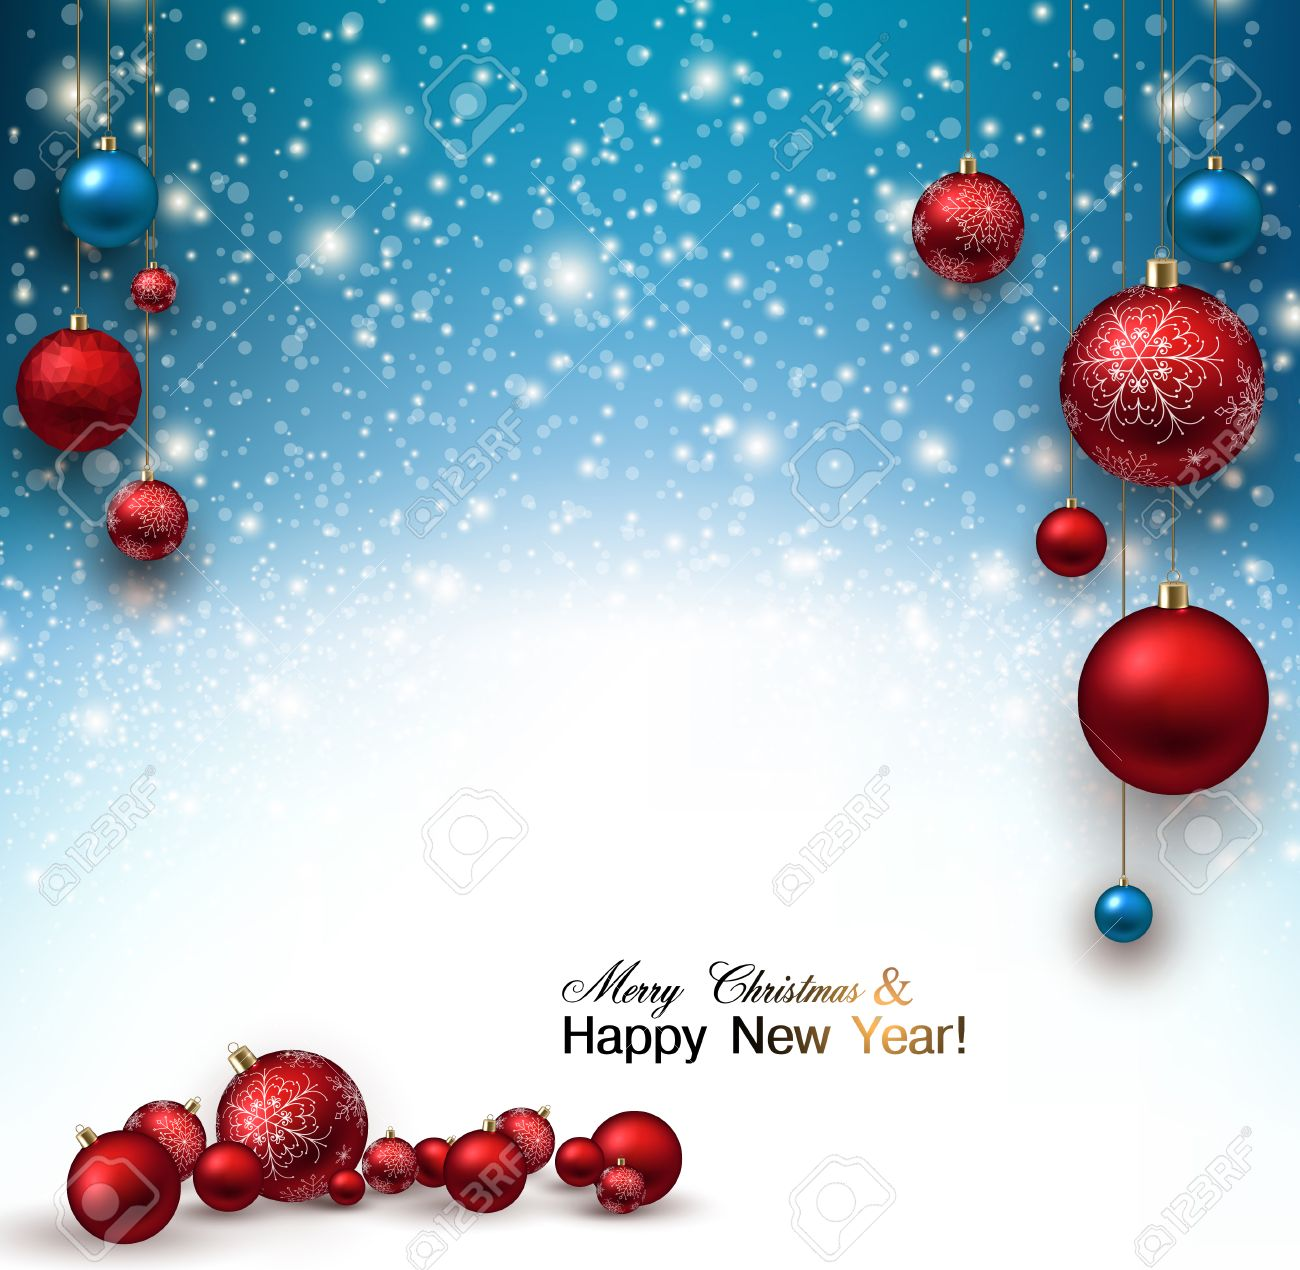 Christmas Background Vector.Christmas Background With Red Christmas Balls And Snow For Xmas